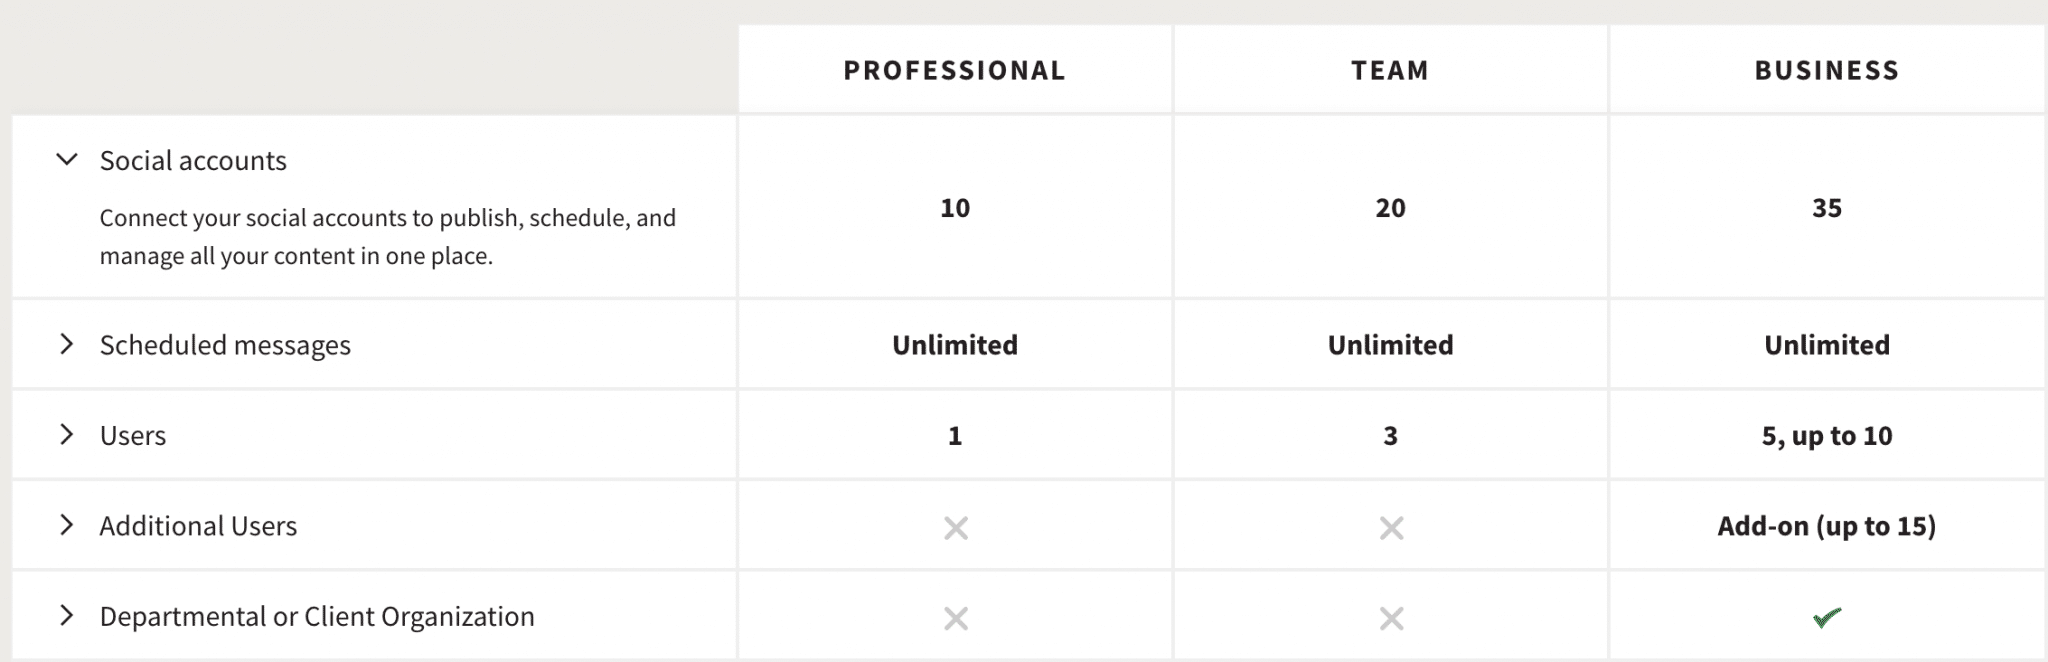 overall look at the differences in hootsuite pricing